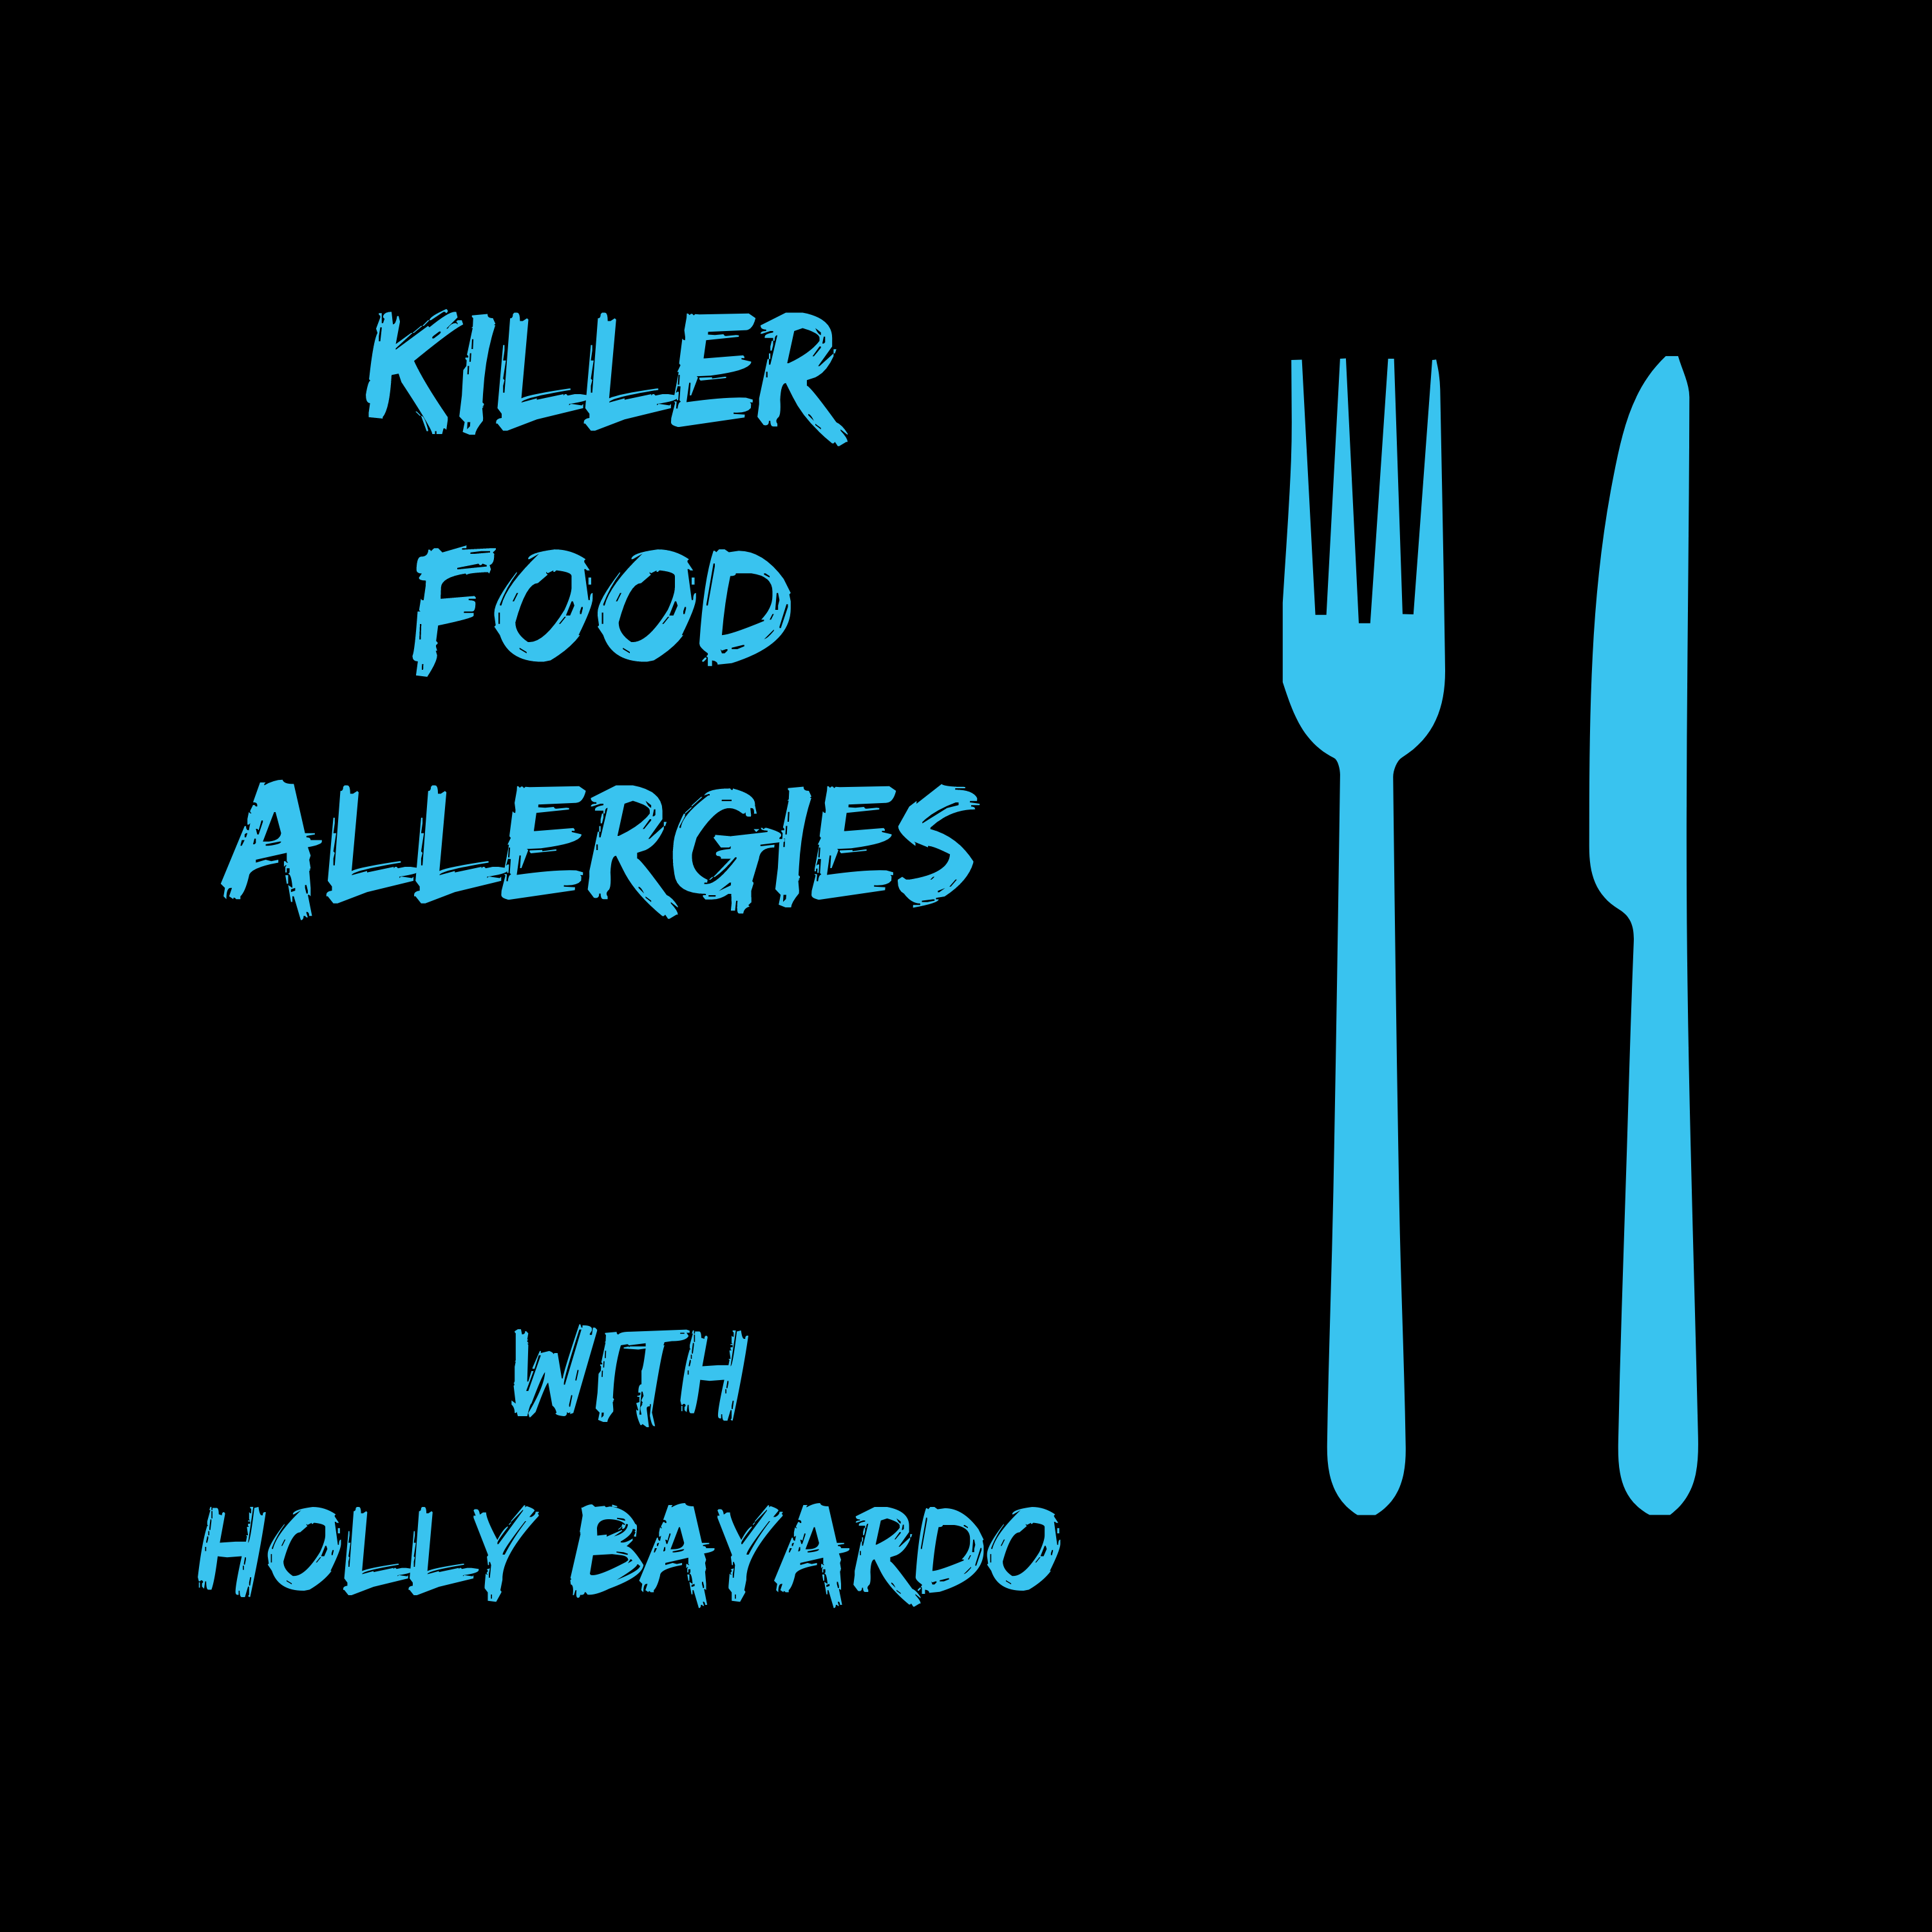 Founder of The Food Allergy Institute, Leah Robilotto show art